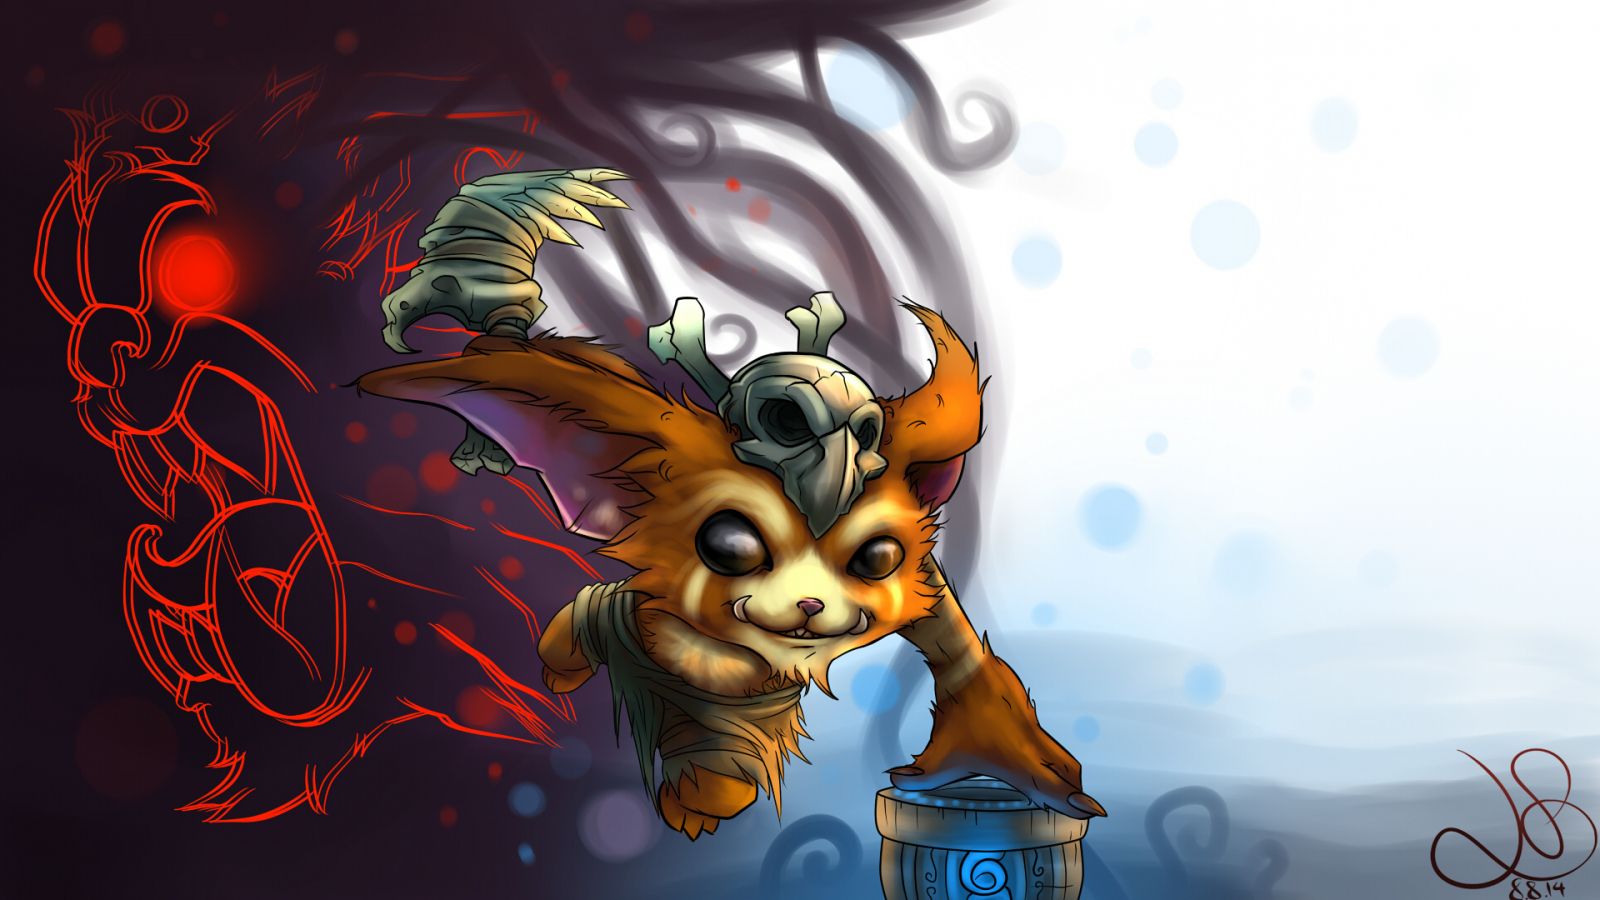 Free Download Gnar The Missing Linkvwallpaper1920x1080 By Colafied